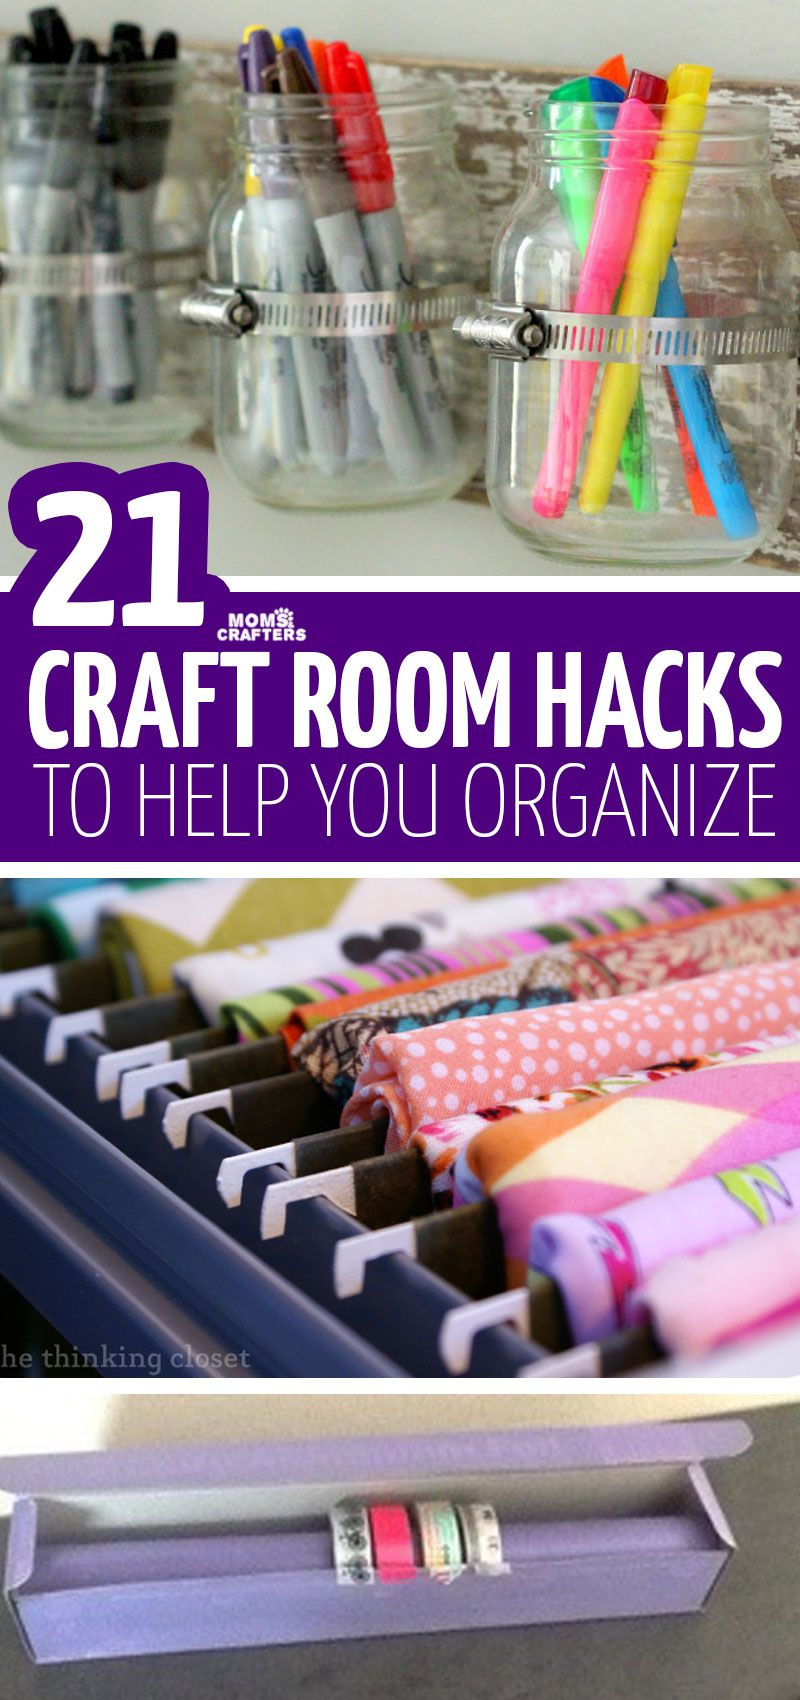 Craft Room Organization Hacks images